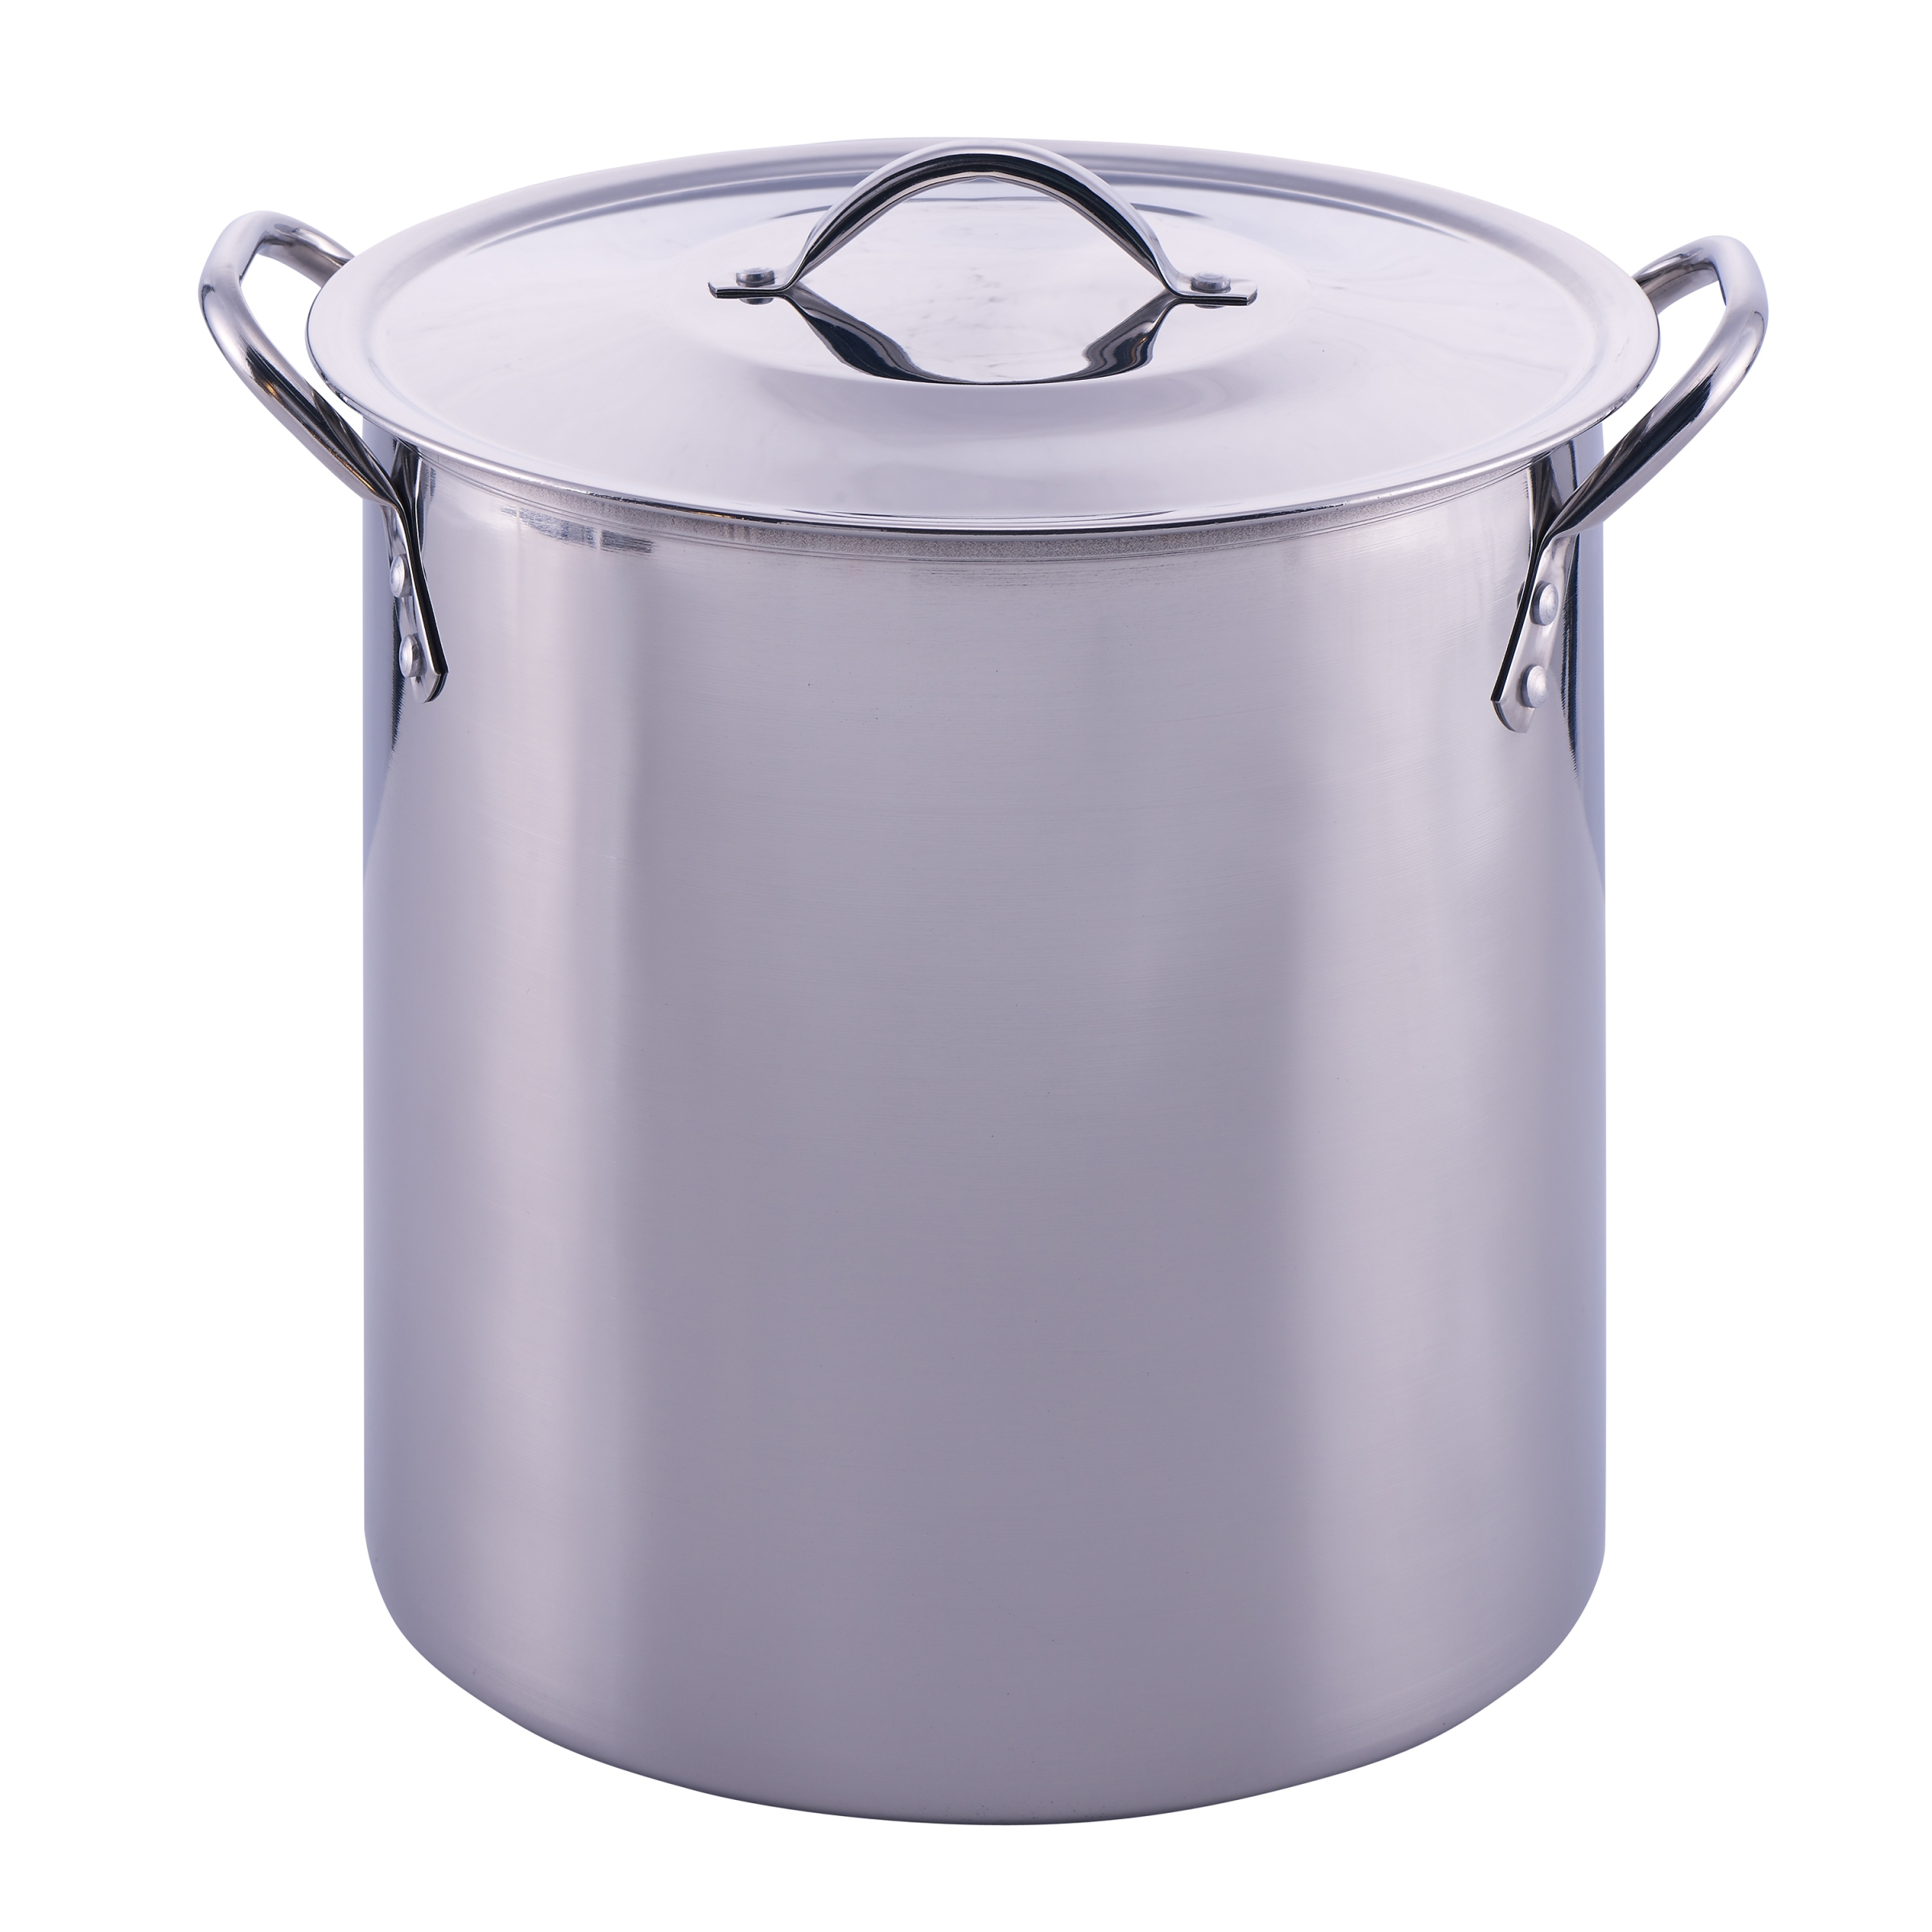 Mainstays 16 Quart Stock Pot with Lid, Stainless Steel